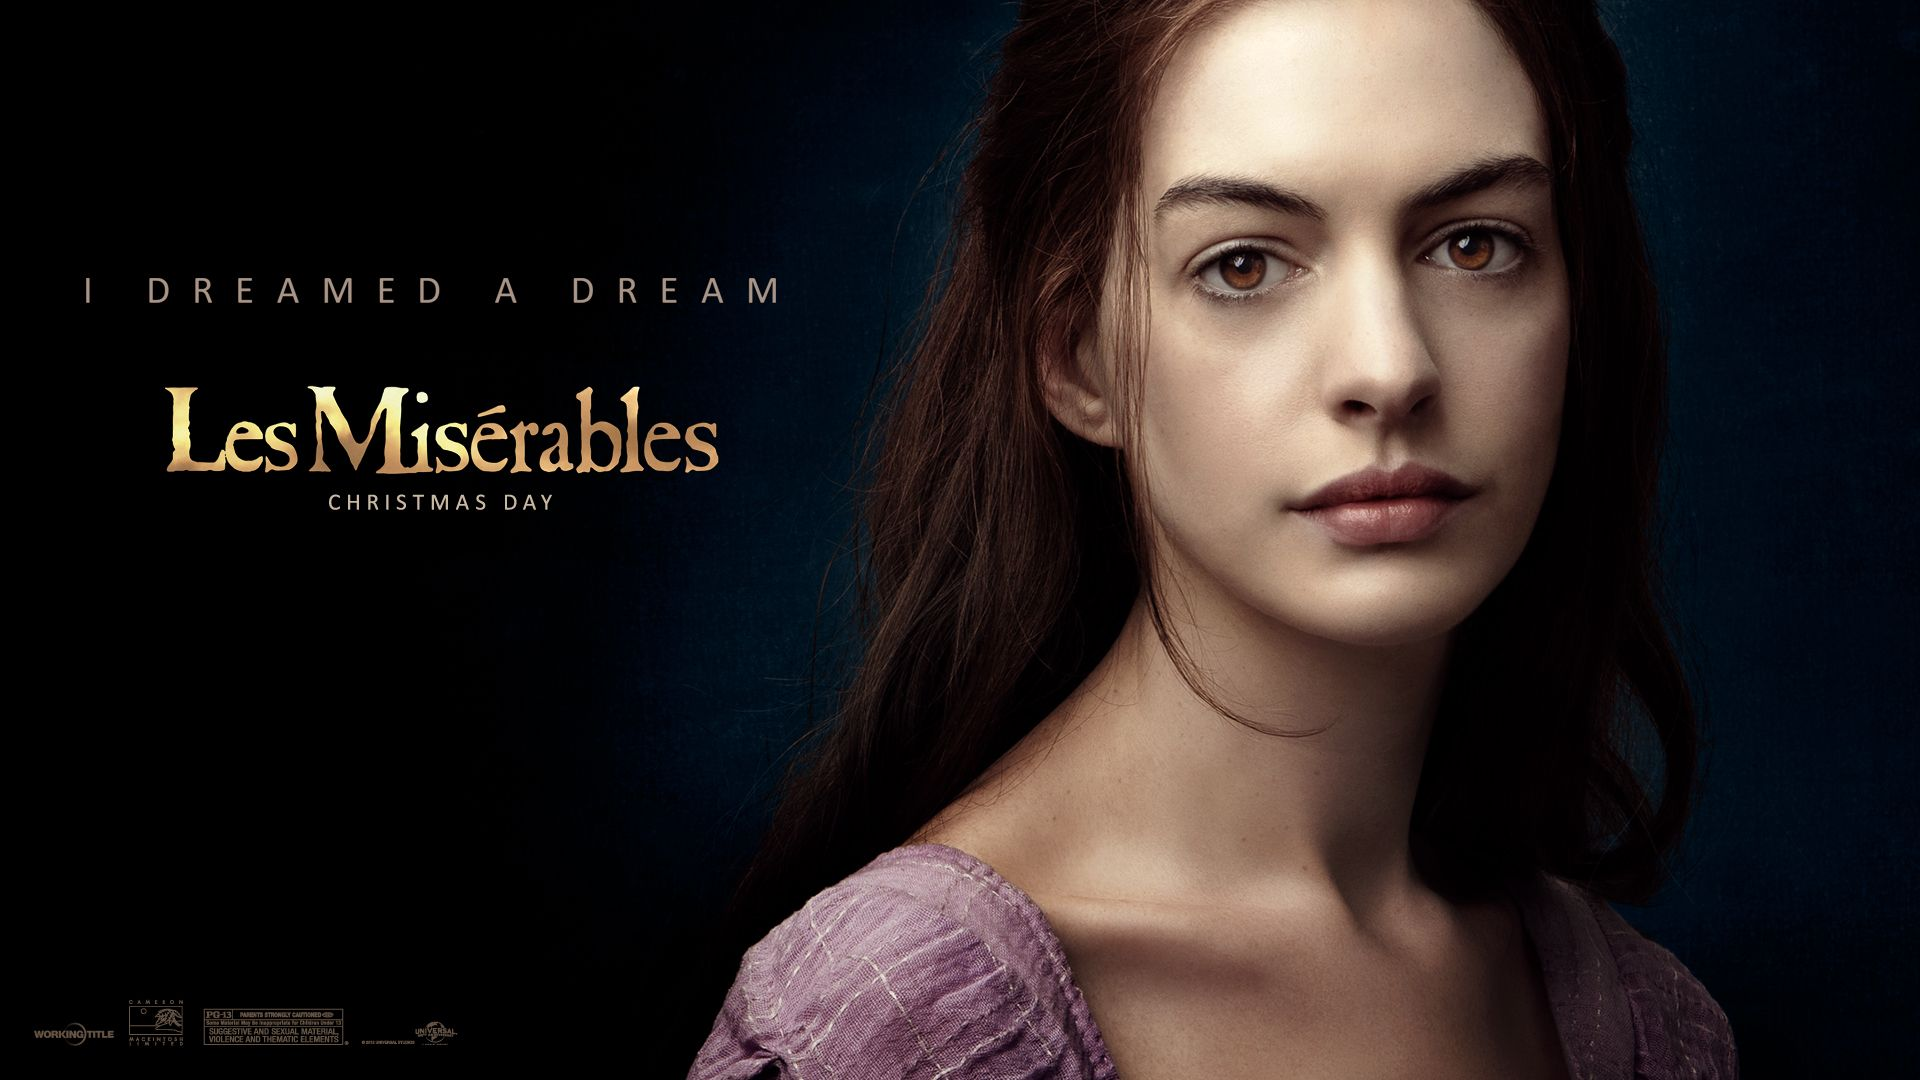 best images about les mis eacute rables movie  17 best images about les miseacuterables movie 2012 eddie red ne anne hathaway and poster